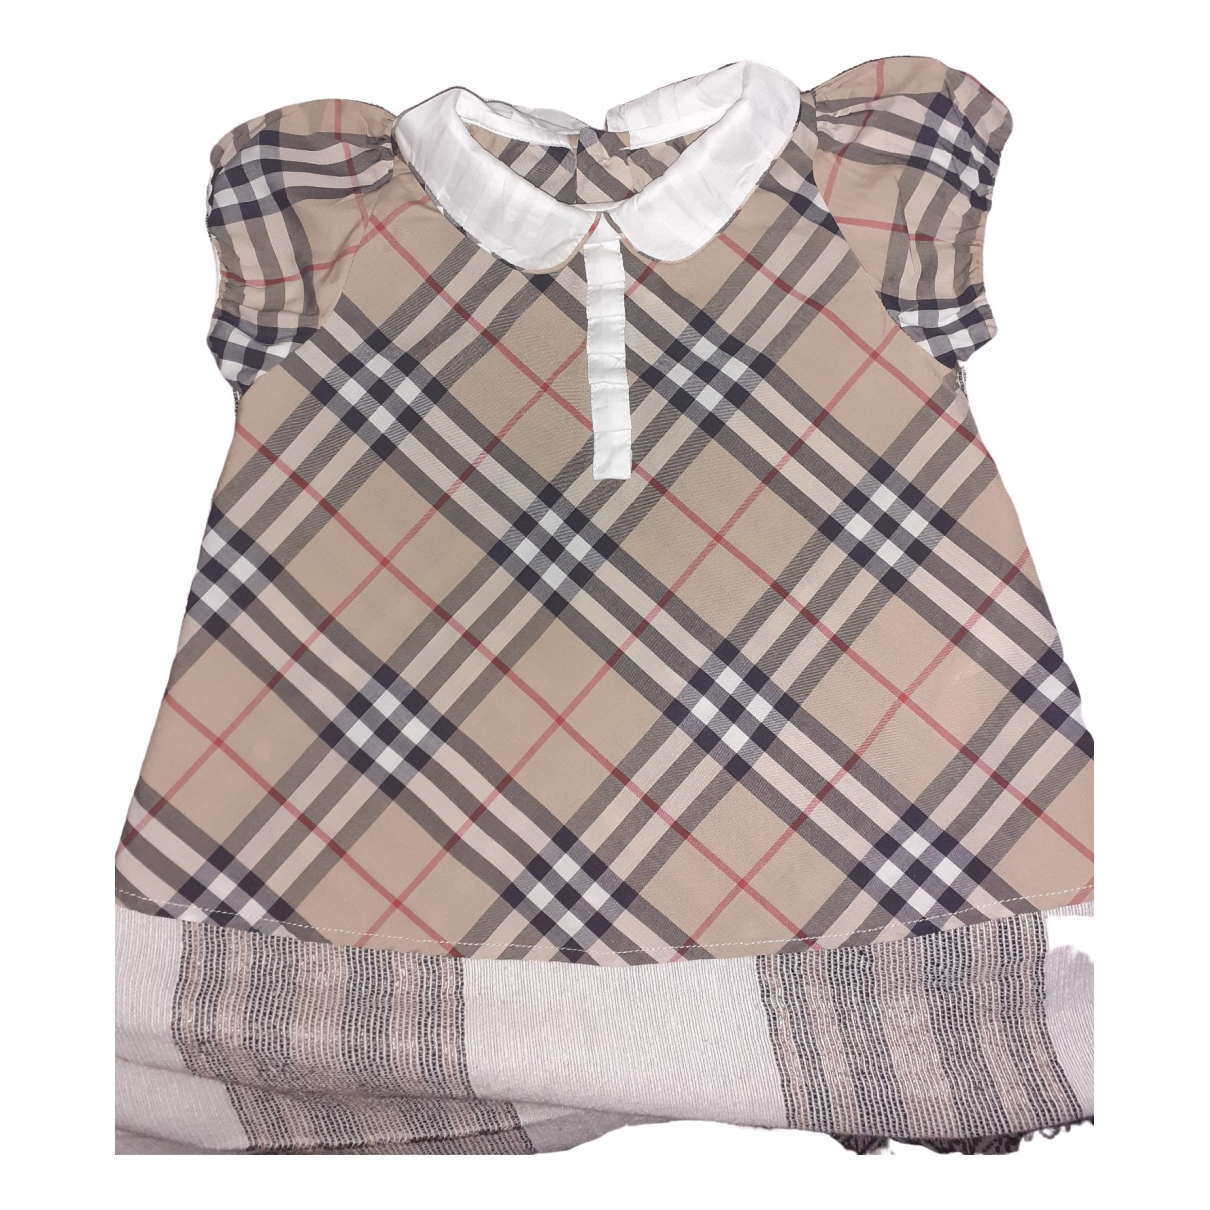 Burberry \N Beige Cotton dress for Kids 12 months - up to 74cm FR